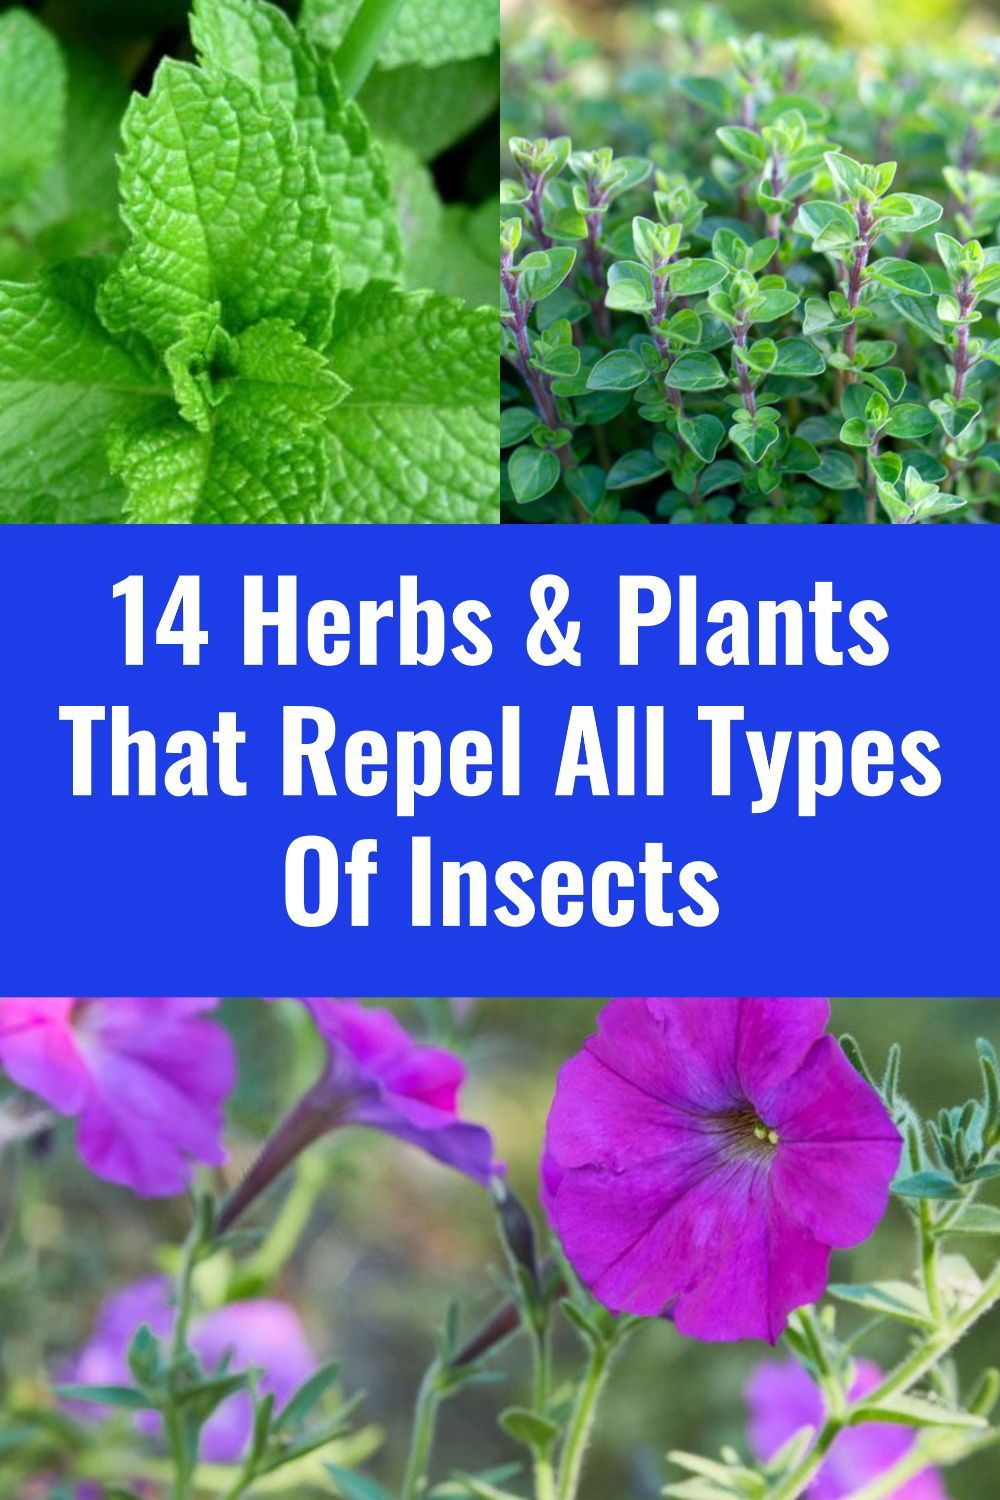 14 Herbs Plants That Repel All Types Of Insects In 2020 Insect Repellent Plants Planting Herbs Herbs